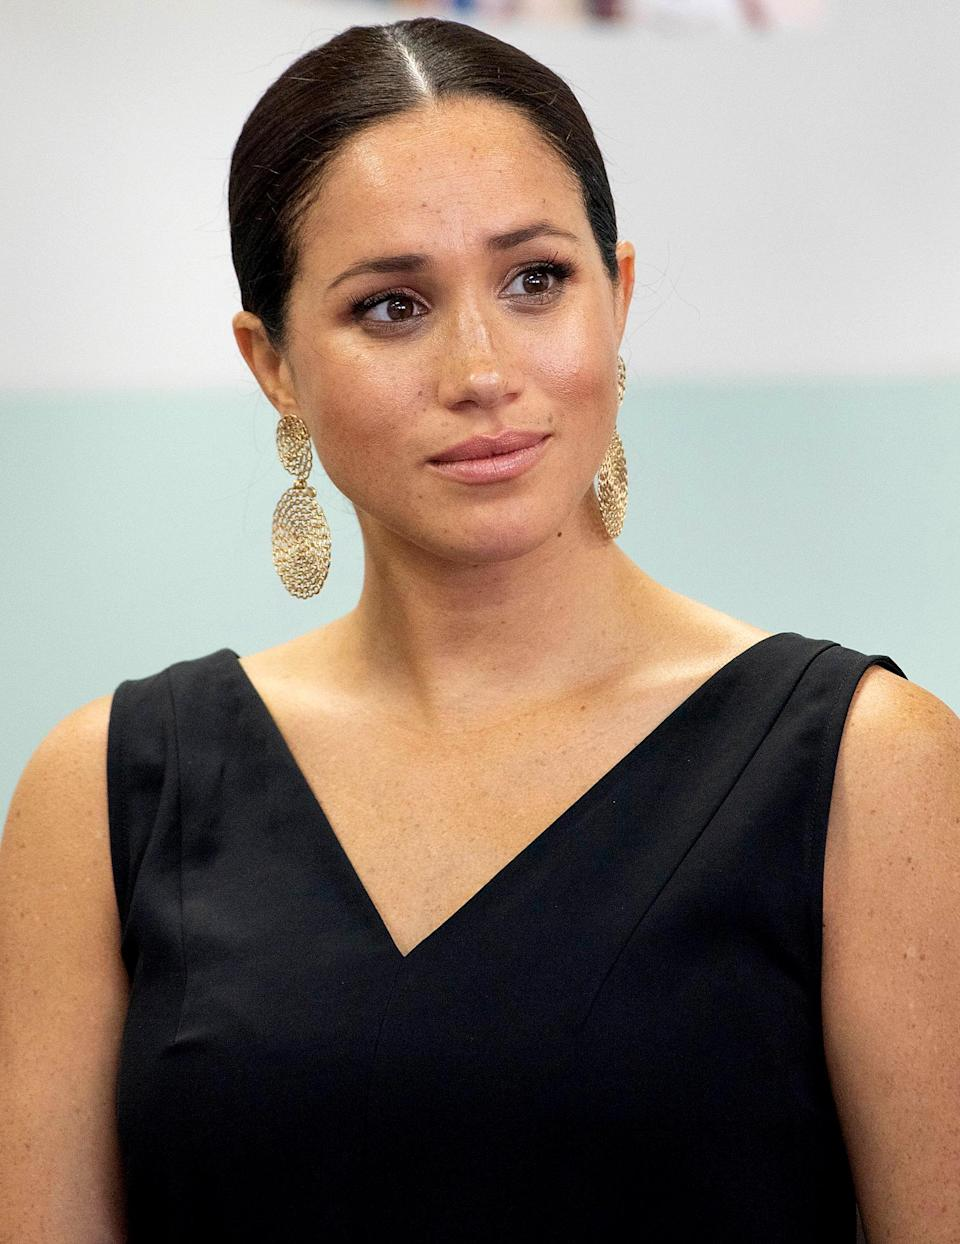 """<p>The Duchess of Sussex broke barriers with her Nov. 25 essay in <em>The New York Times</em> that detailed a miscarriage she suffered earlier in the year. The confessional op-ed was a departure from royal norms — much like her move with Prince Harry and their young son Archie to California earlier this year. In her piece, Meghan also touched on larger themes, including the Black Lives Matter movement and rising political division, and referenced her own 2019 interview in which she admitted she was """"not okay."""" """"Let us commit to asking others, 'Are you okay?' """" she wrote. </p>"""